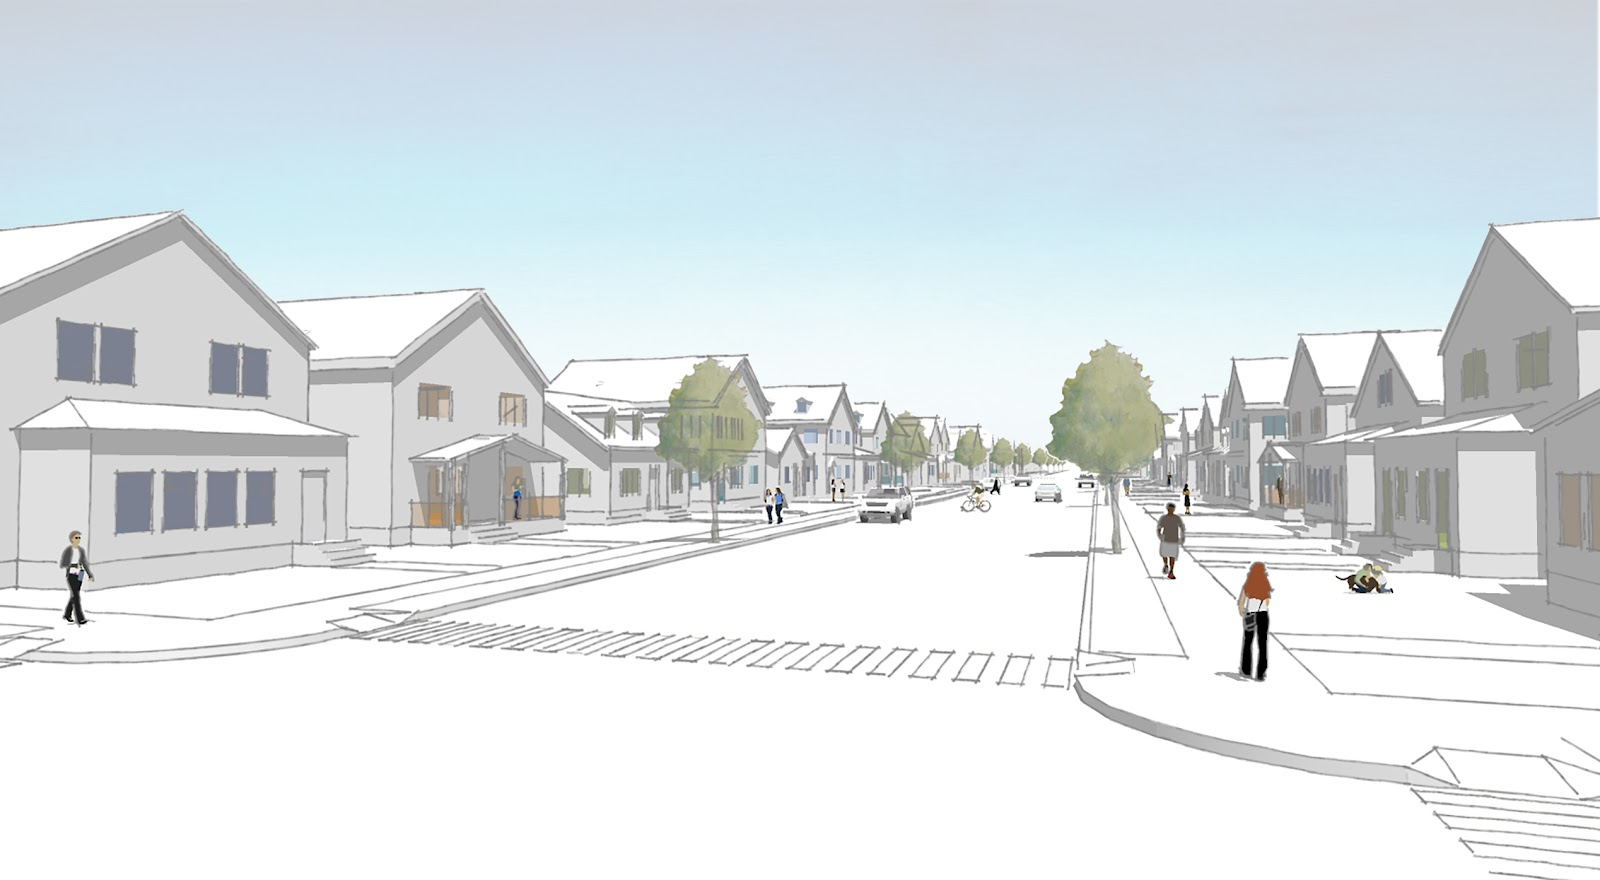 Rendering of street with one- and two-story buildings